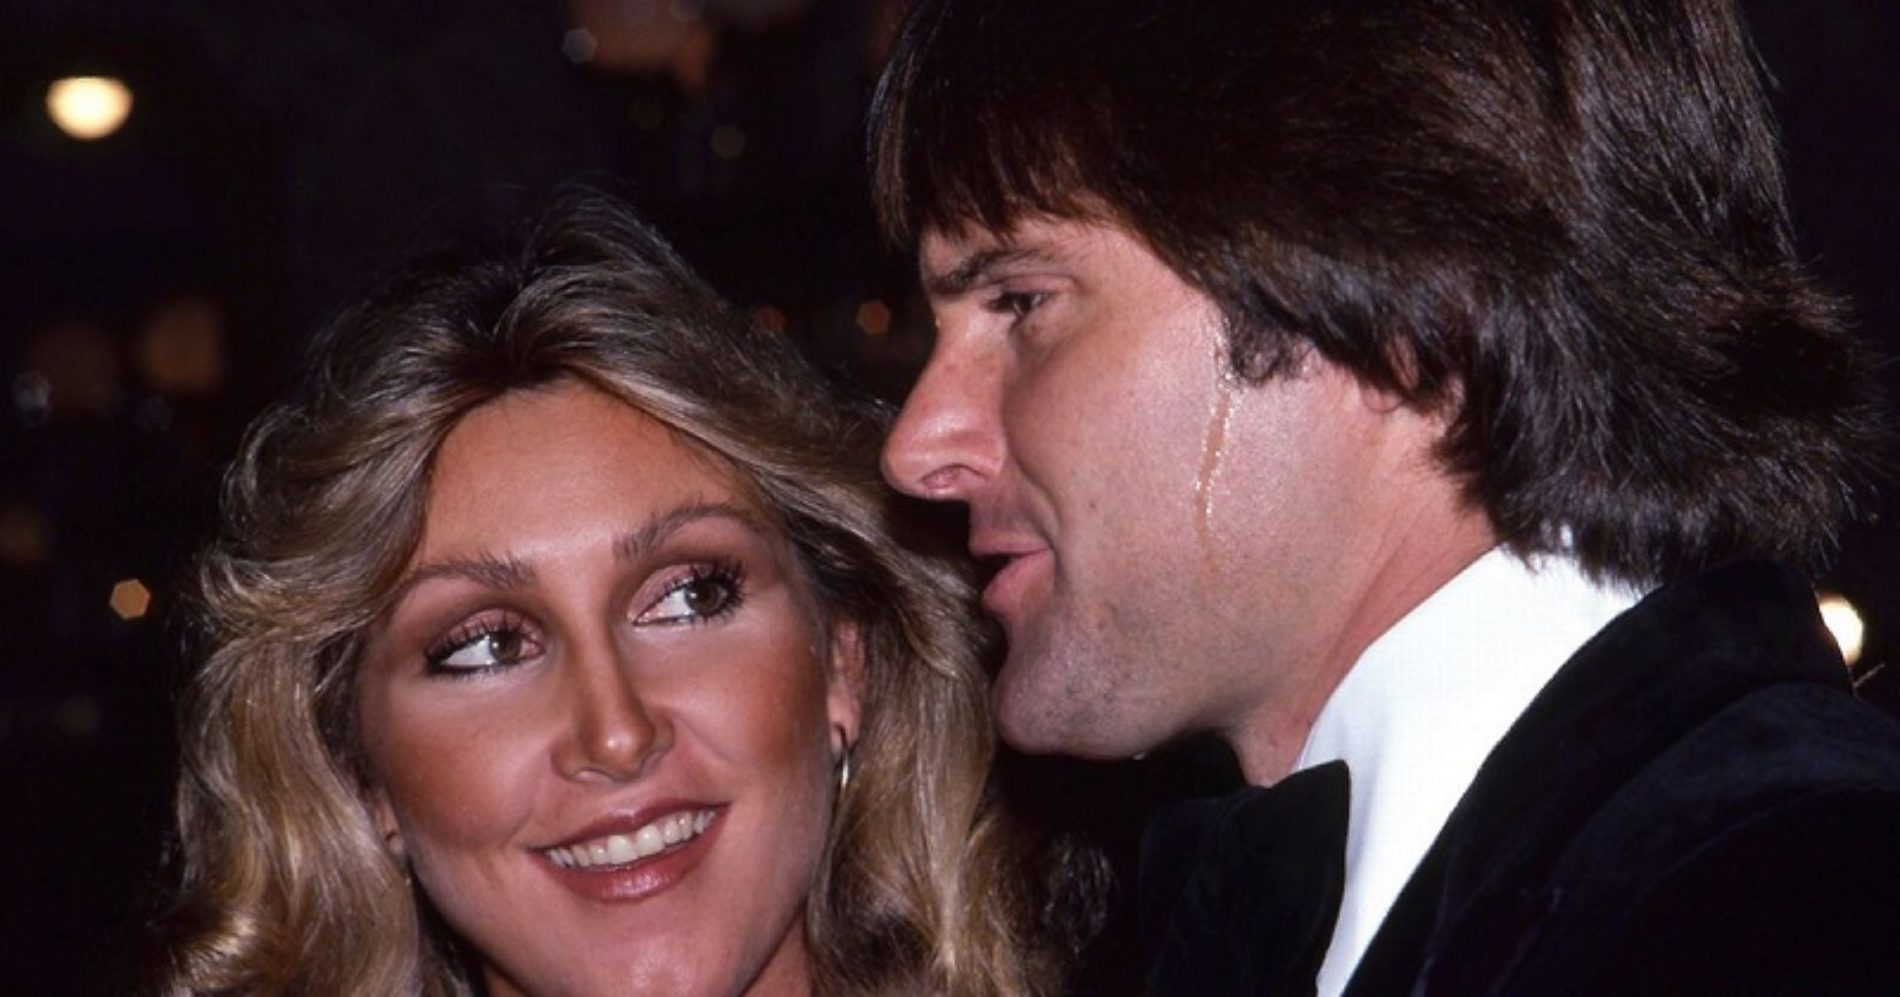 Five things Caitlyn Jenner's ex-wife revealed about her in a new book